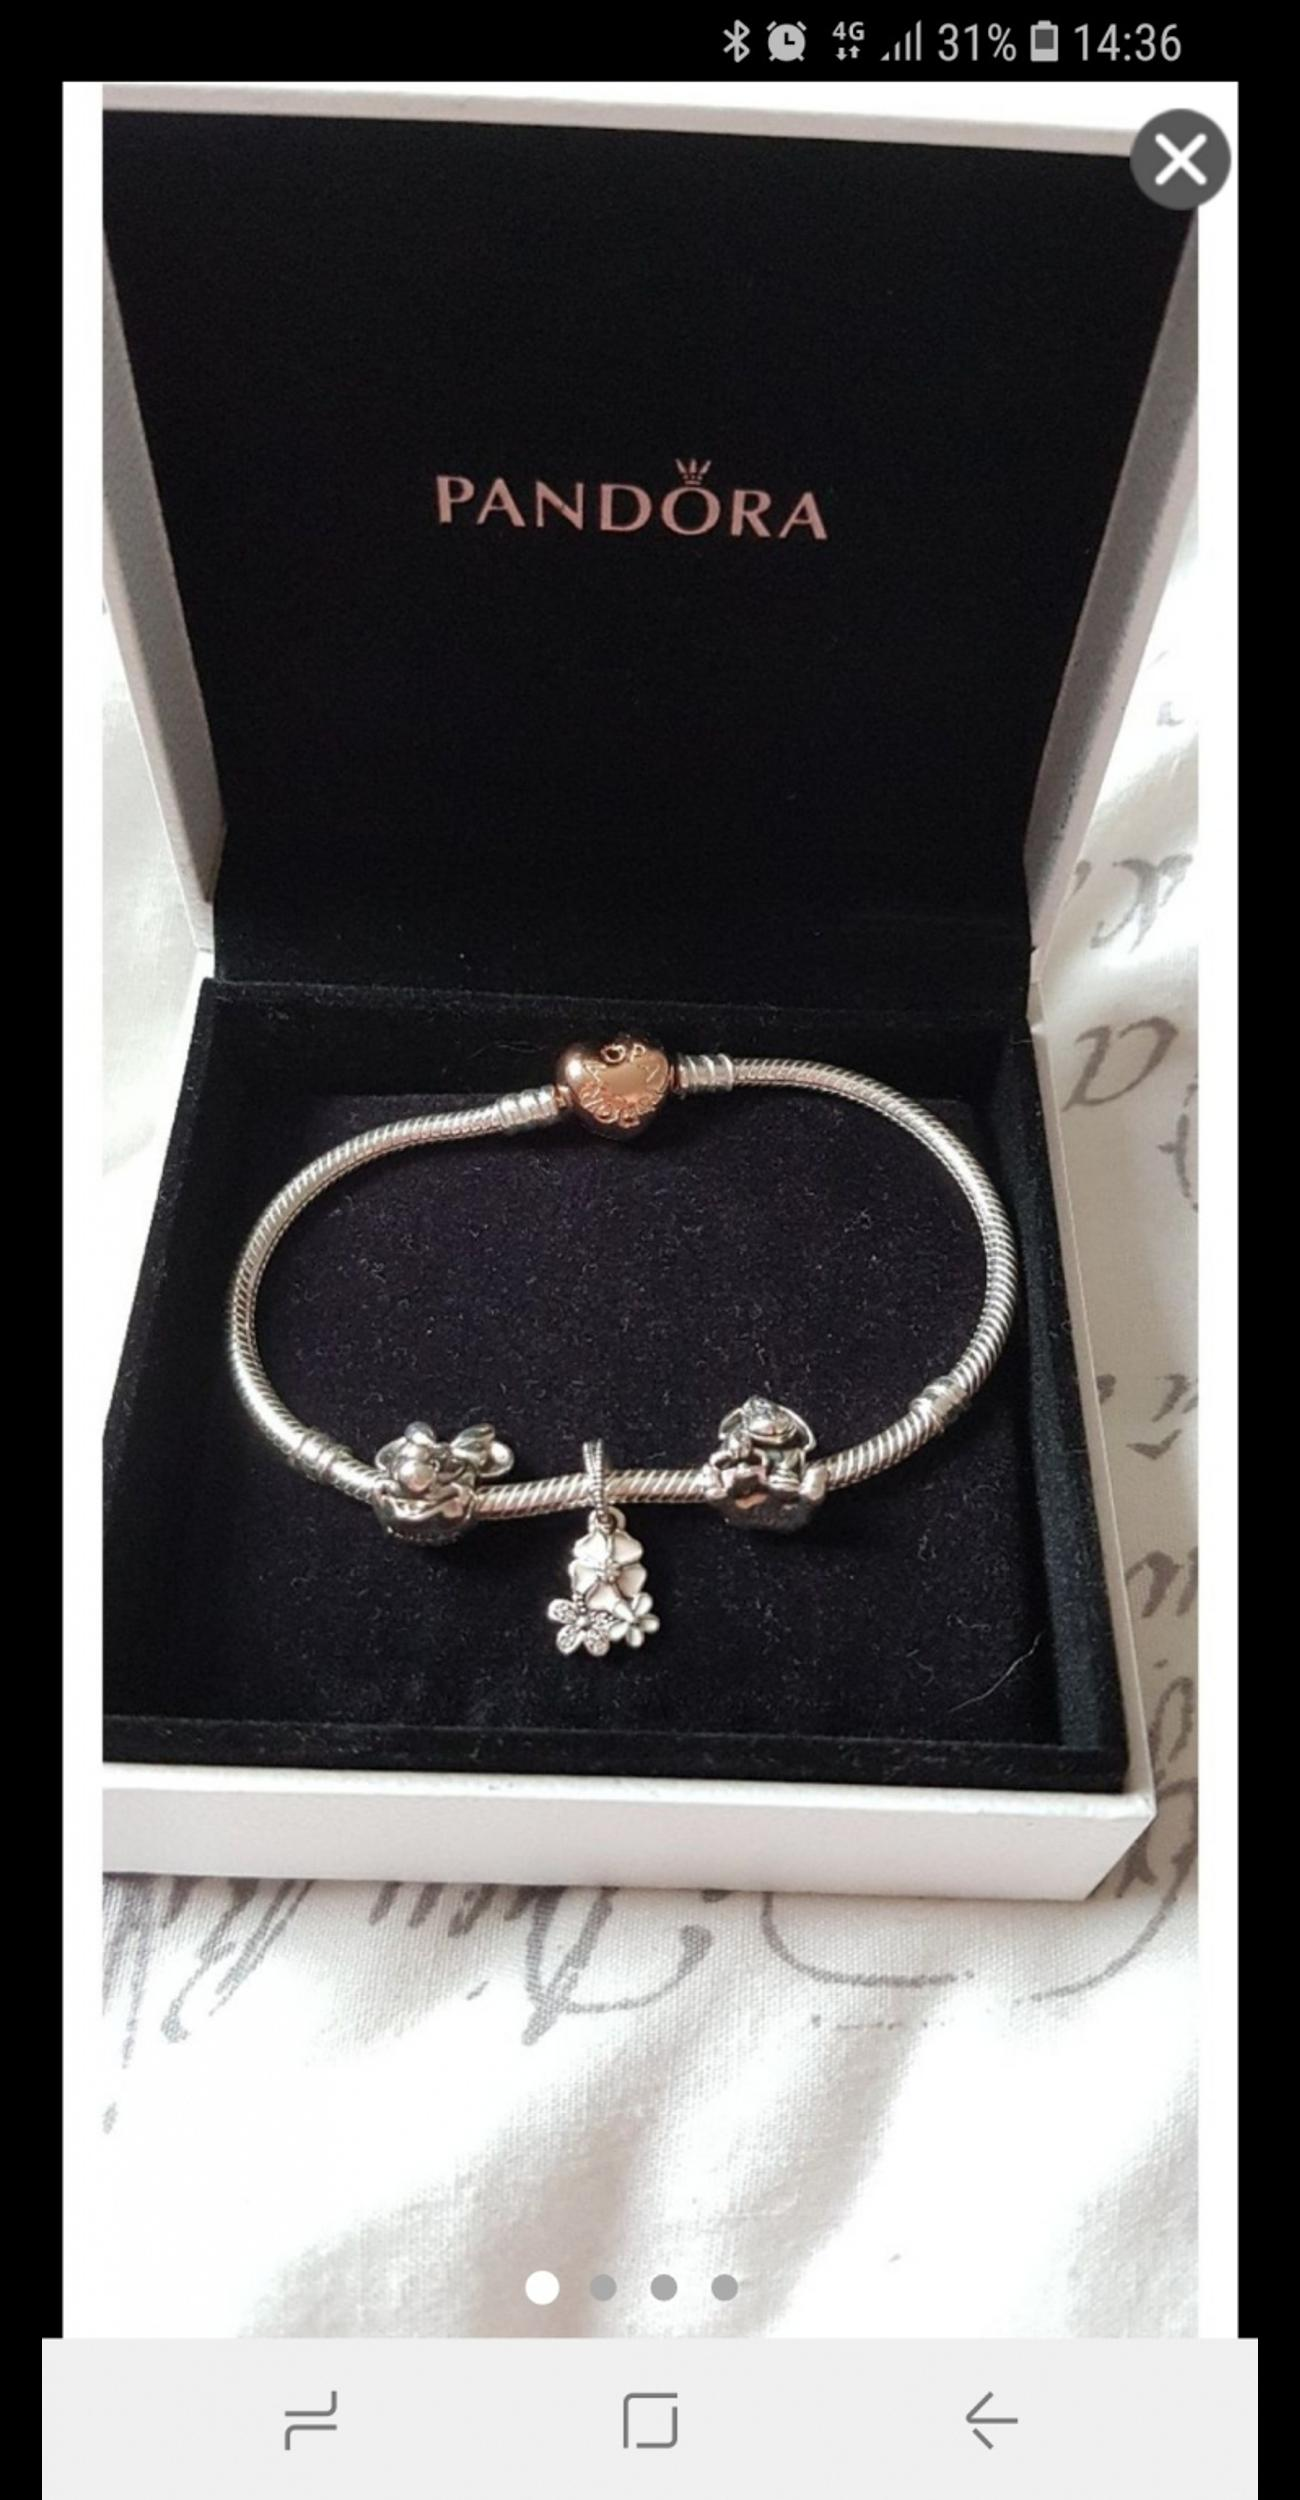 Pandora Bracelet With Rose Gold Heart Clasp In Sr8 Peterlee For 70 00 For Sale Shpock